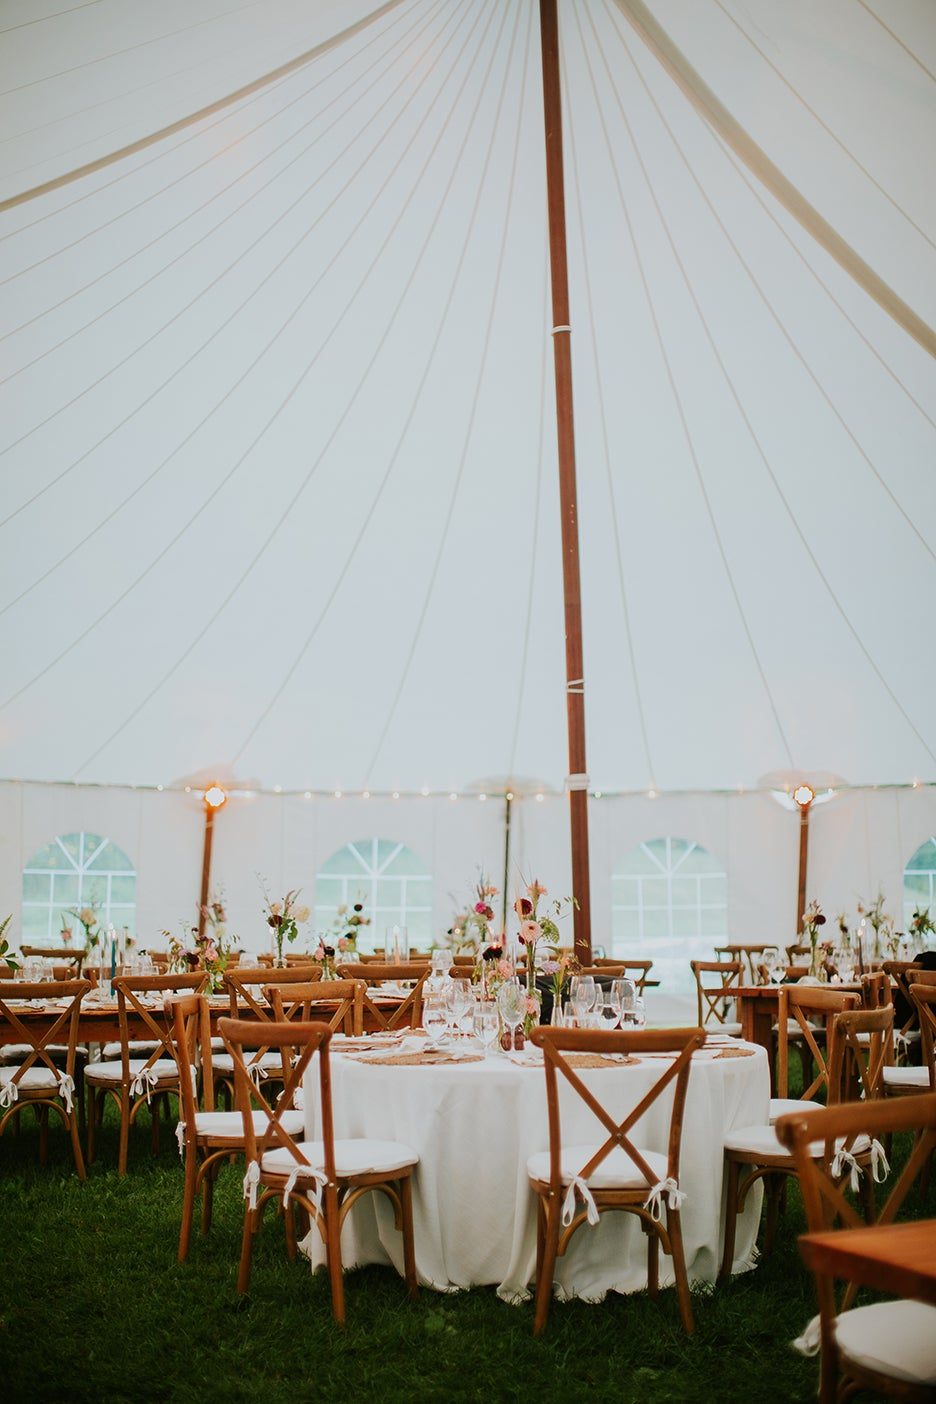 Dining room under a tent